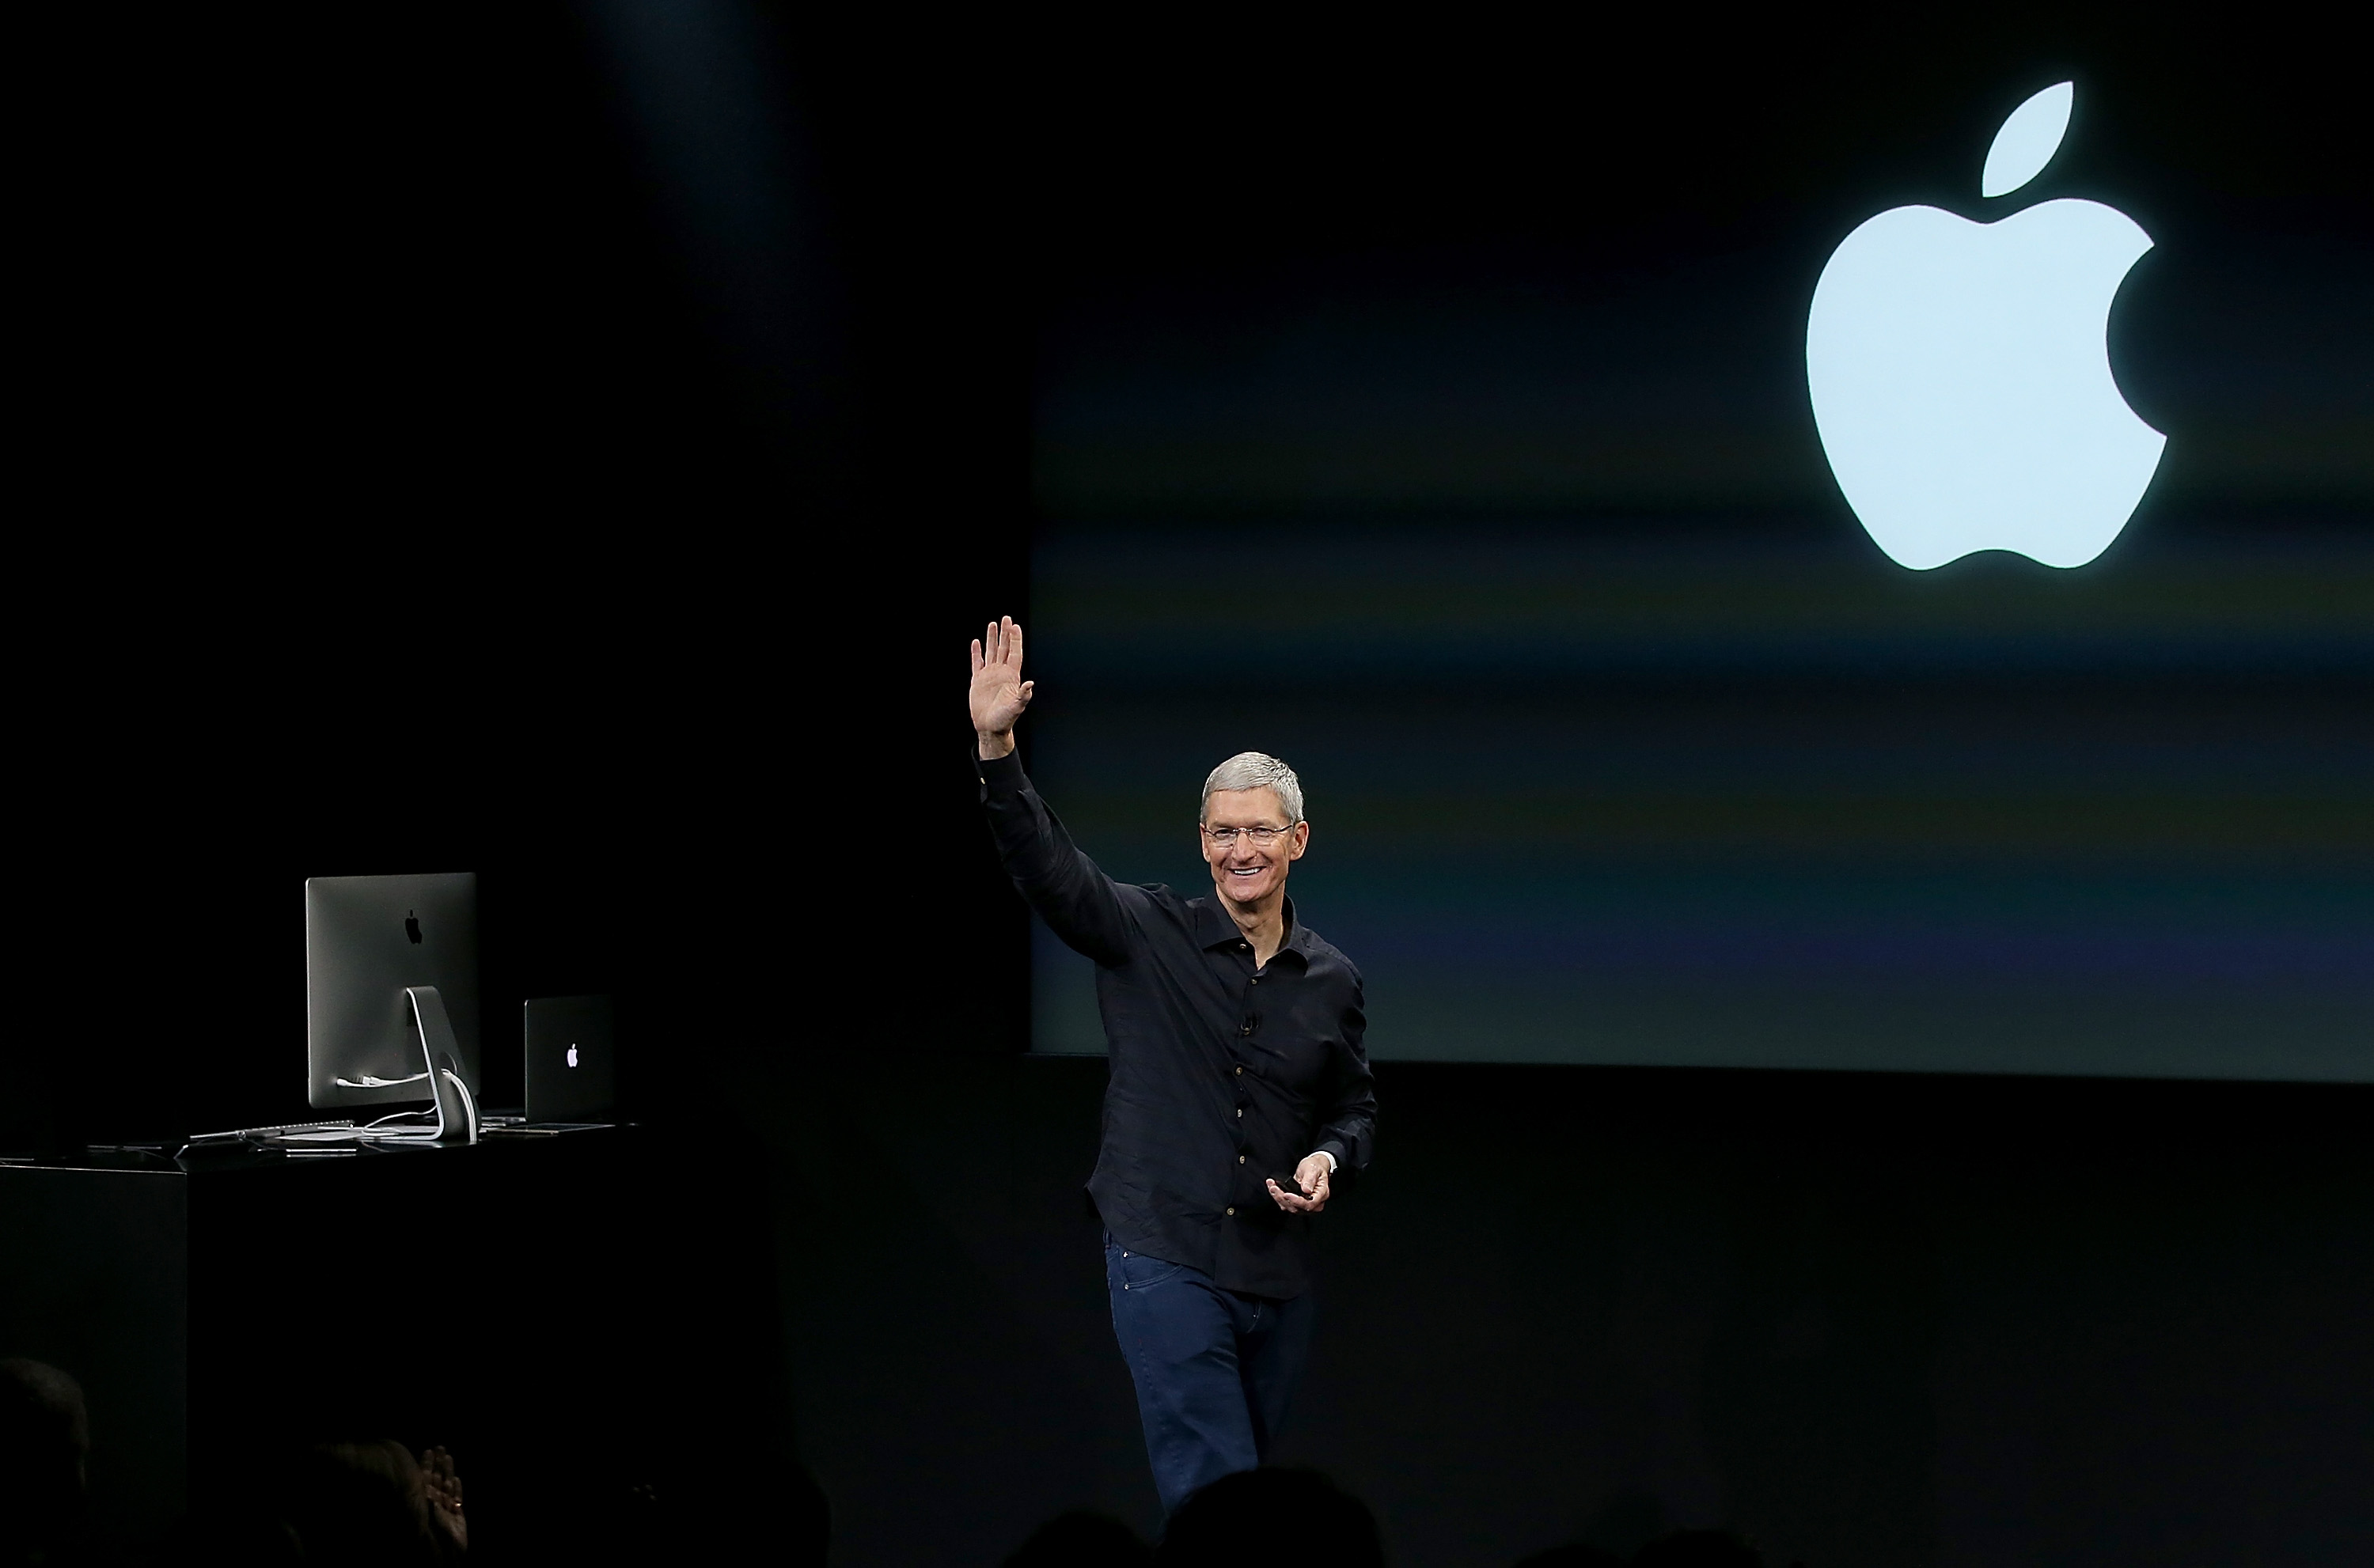 Apple CEO Tim Cook waves during an Apple special event on October 16, 2014 in Cupertino, California.  (Photo by Justin Sullivan/Getty Images)